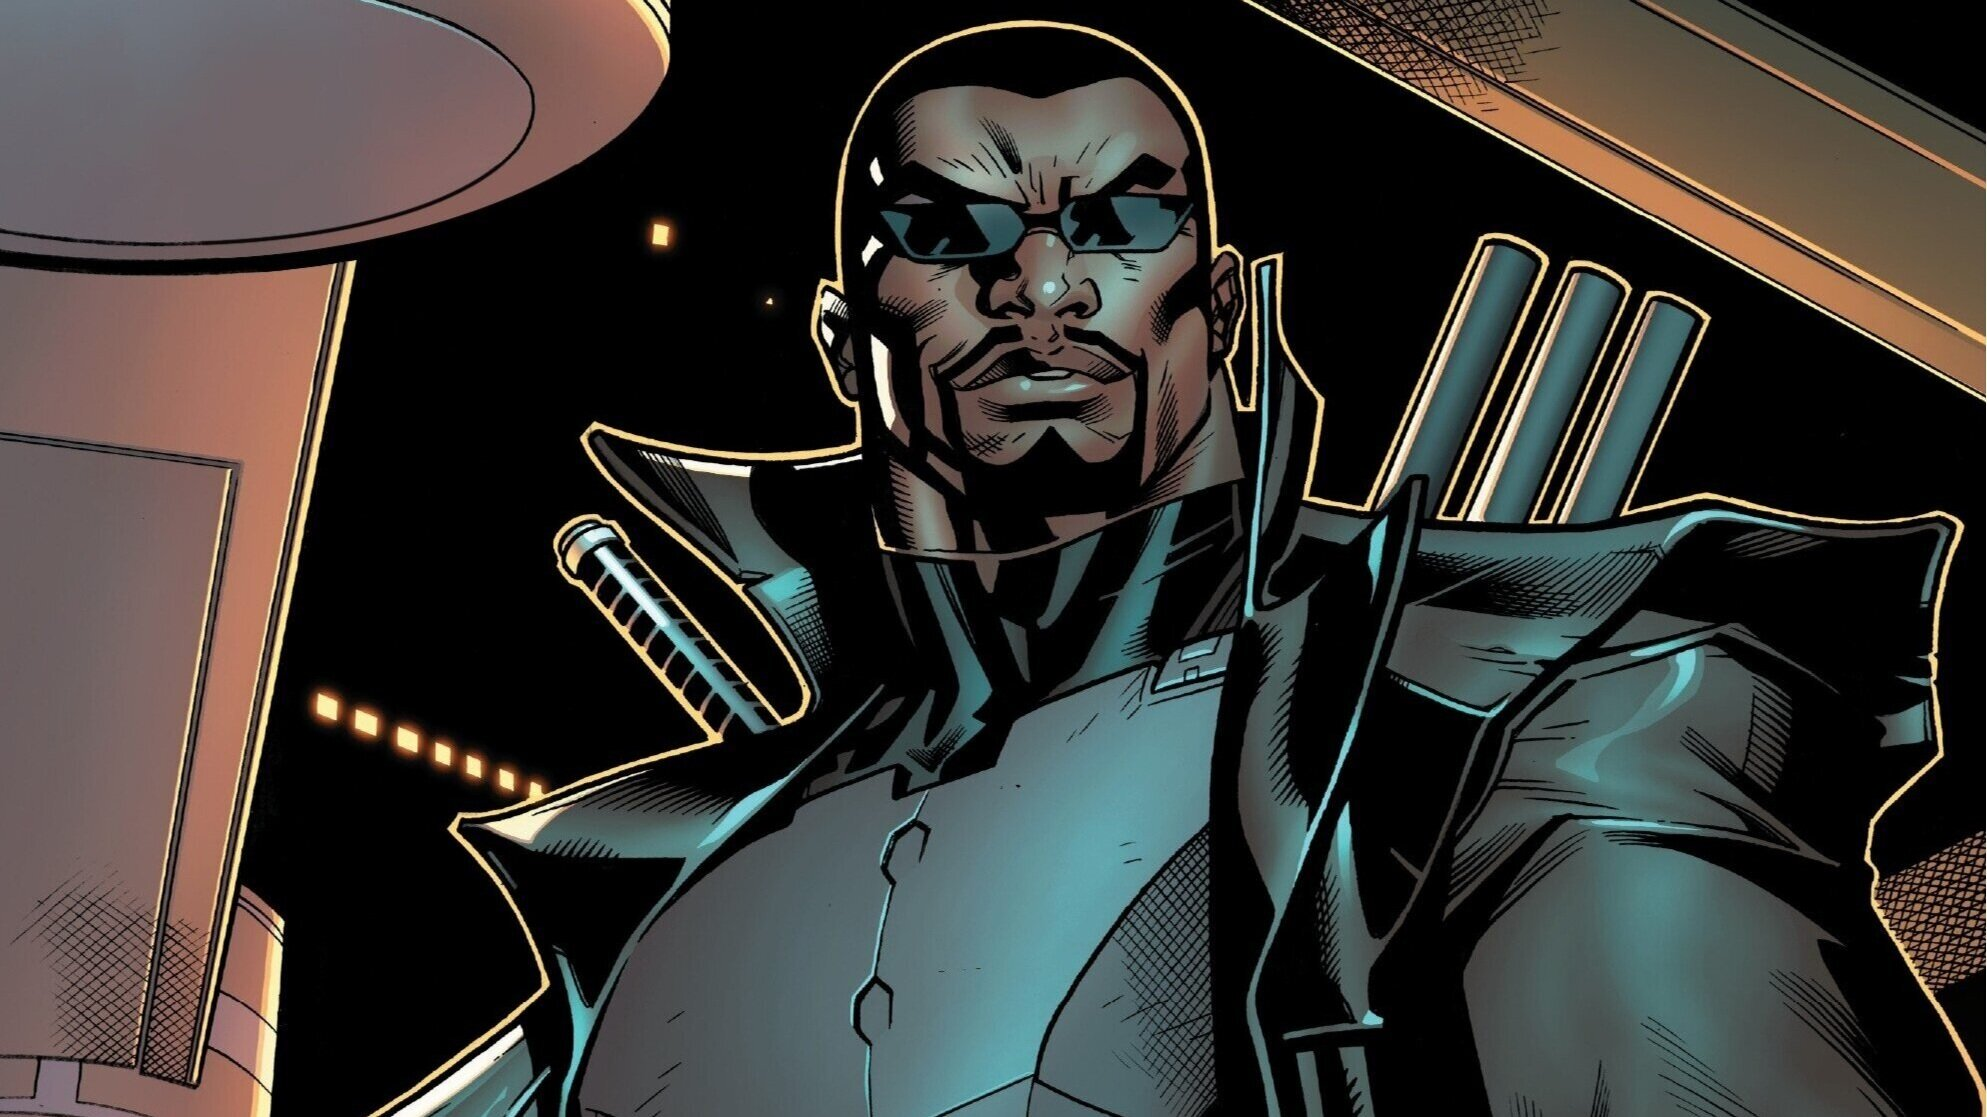 Marvel S Blade Release Date May Have Been Leaked Geektyrant